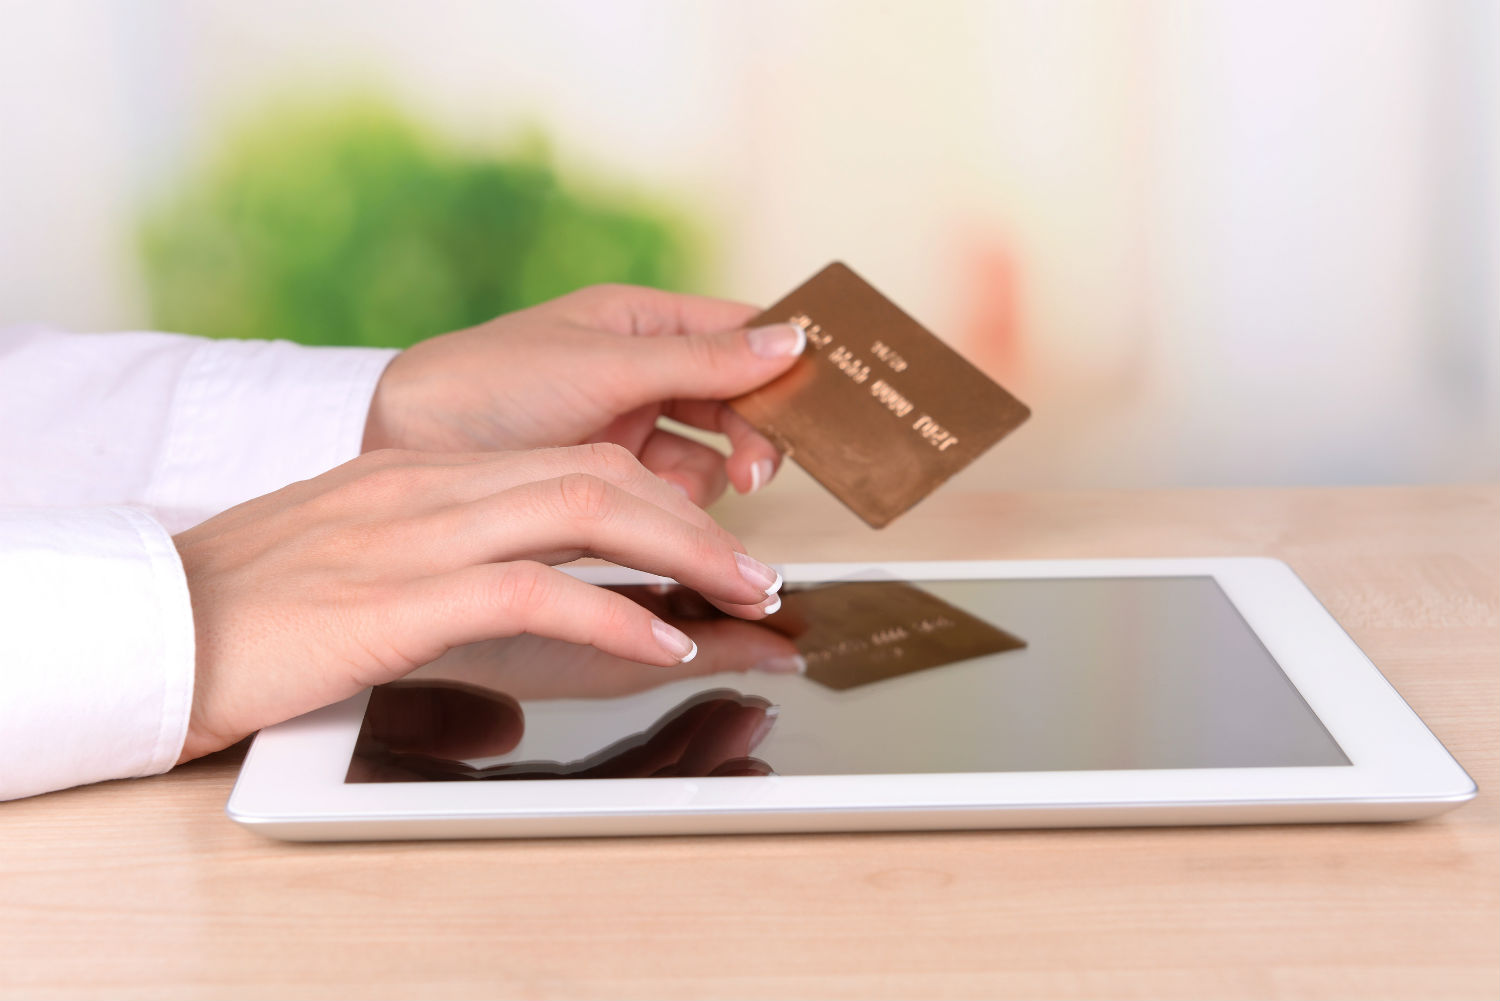 Consumers Turn to Smartphones, Tablets for Holiday Shopping